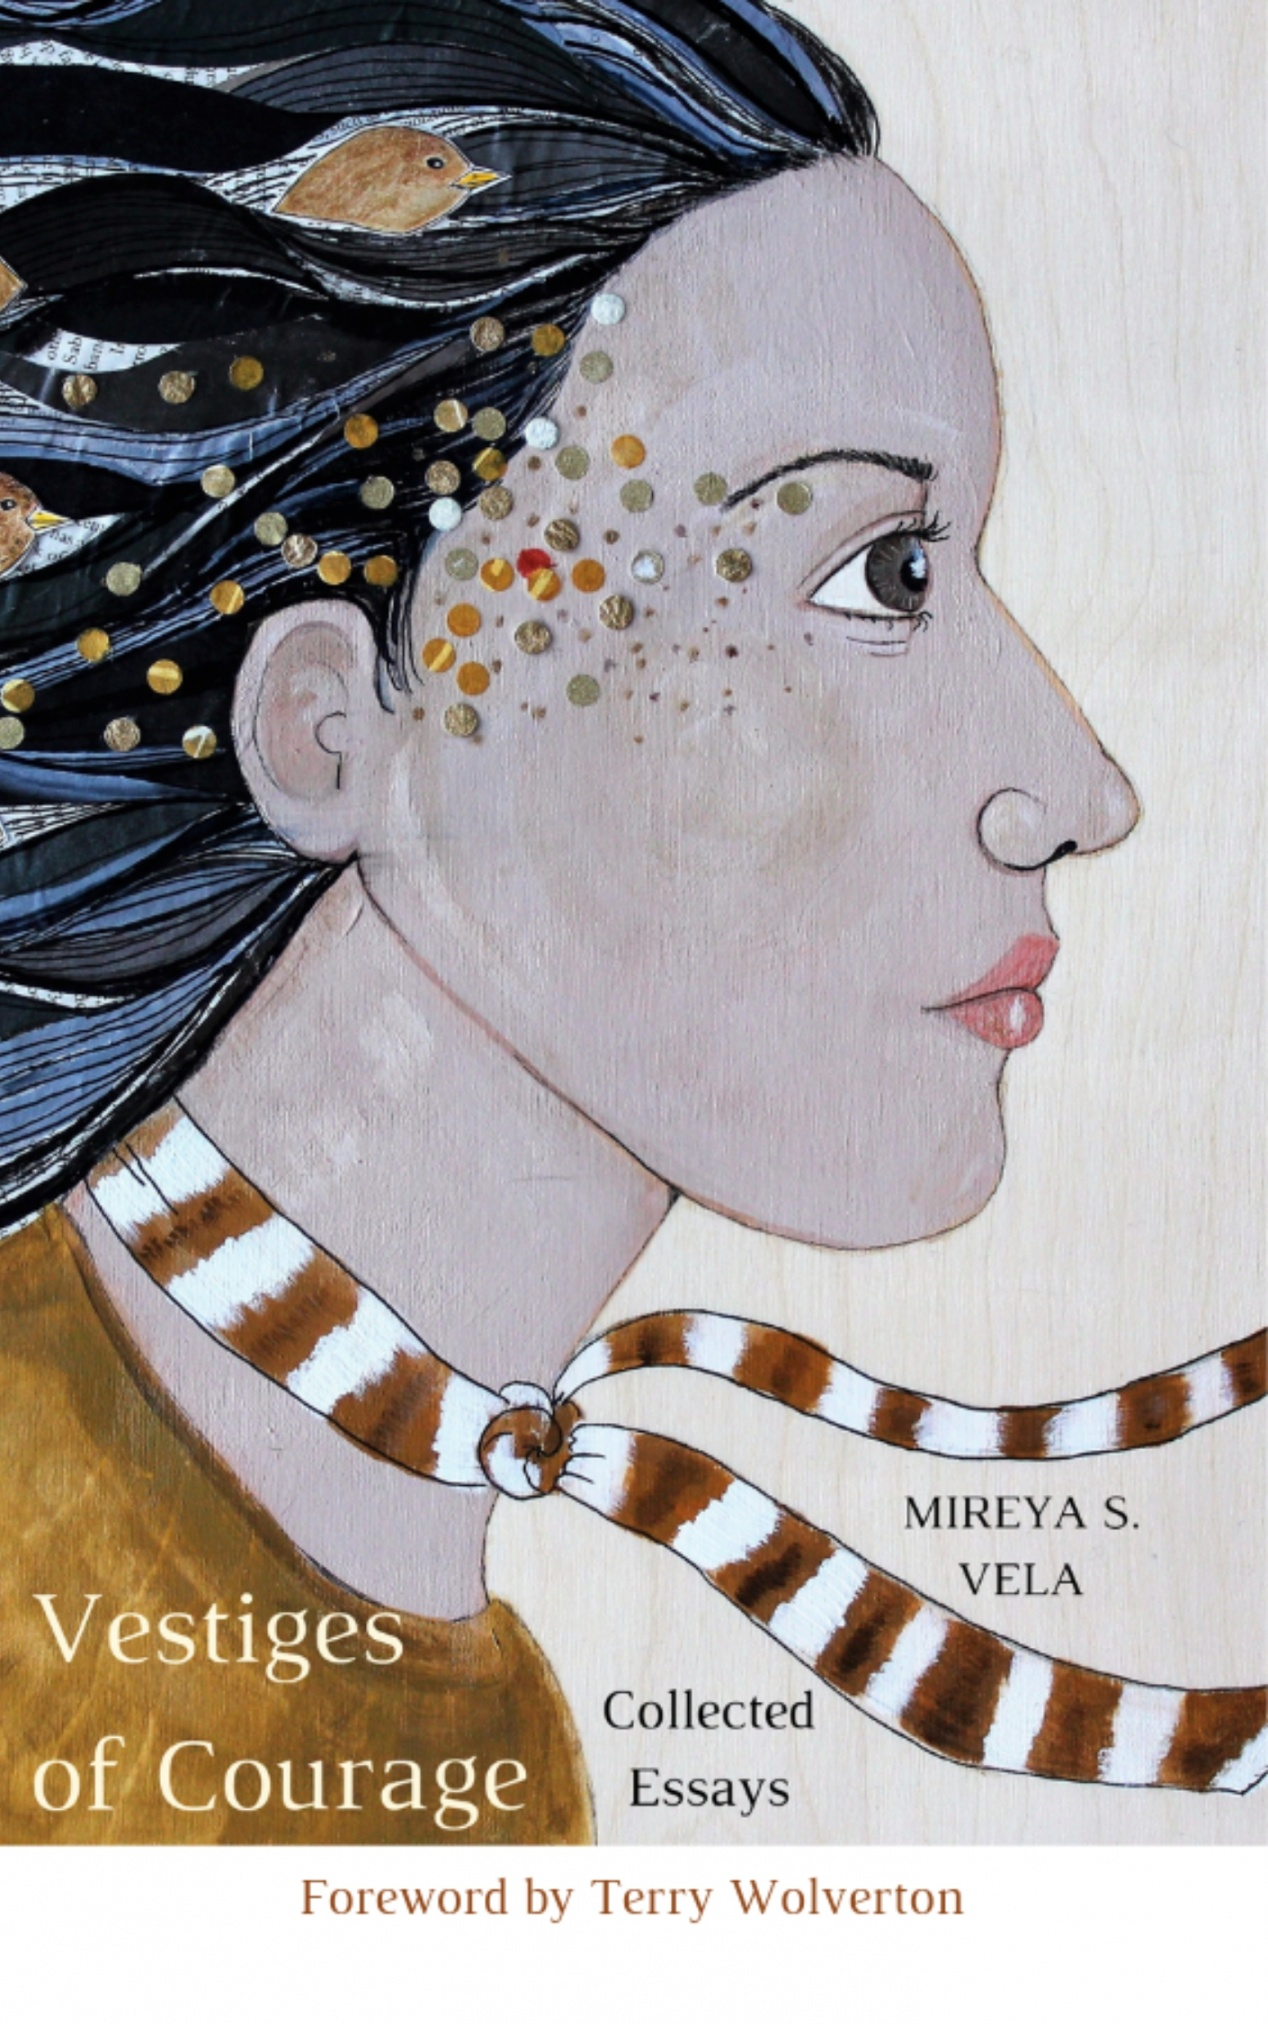 book cover of Vestiges of Courage, by Mireya S. Vela (cover art by the author!)